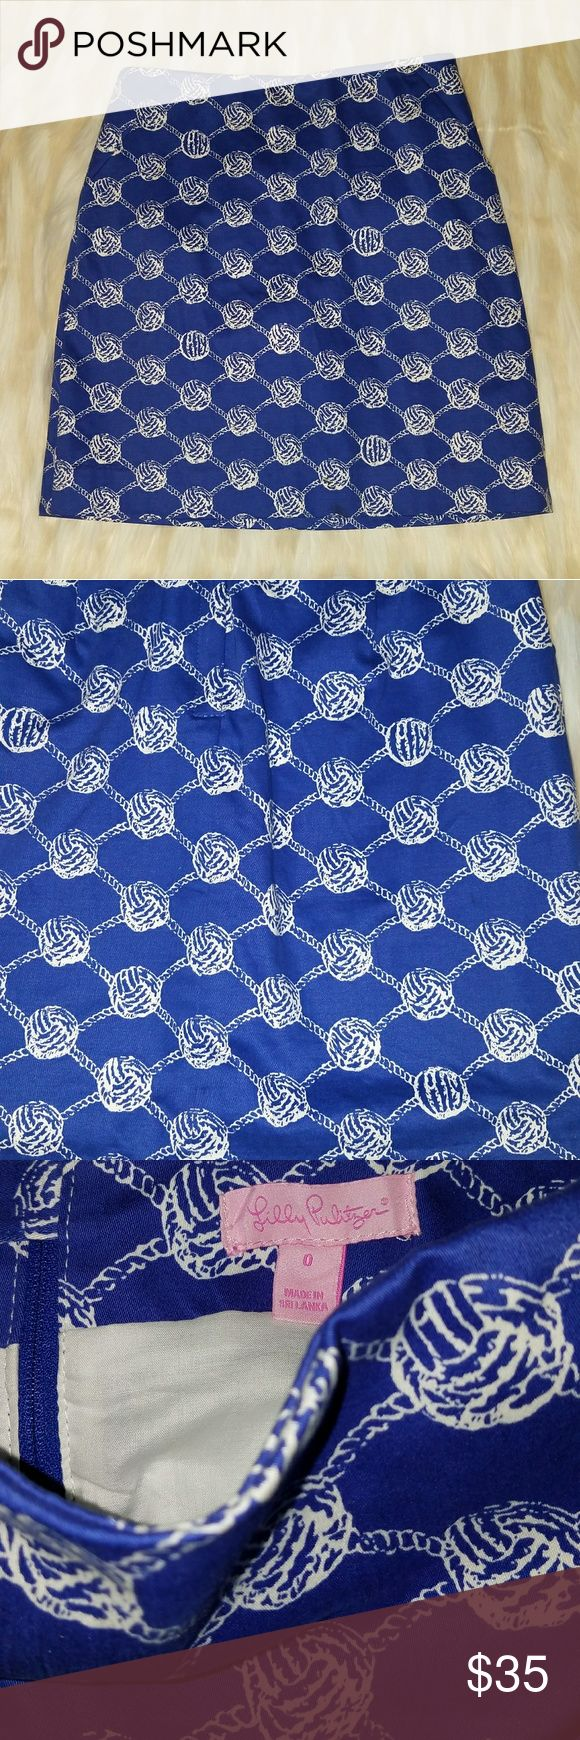 LILLY PULITZER BLUE AND WHITE SKIRT SZ 0 PRE-LOVED IN GREAT CONDITION Lilly Pulitzer Skirts